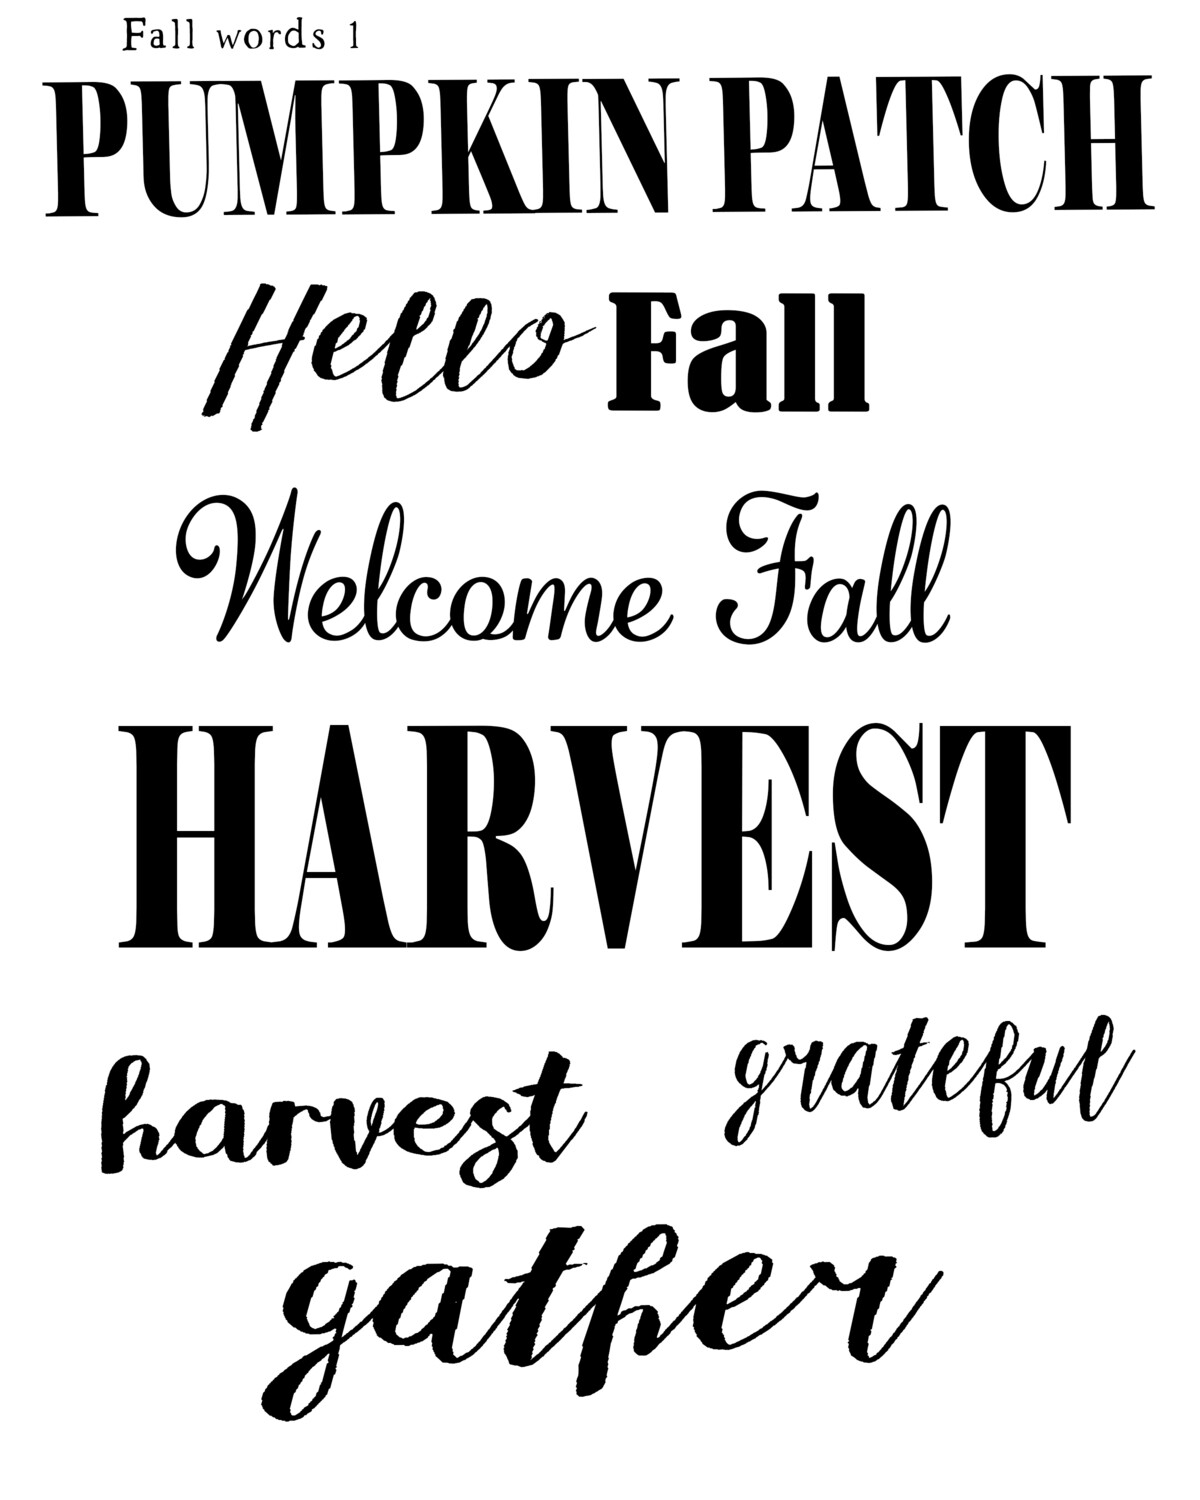 Fall Words 1 stencil